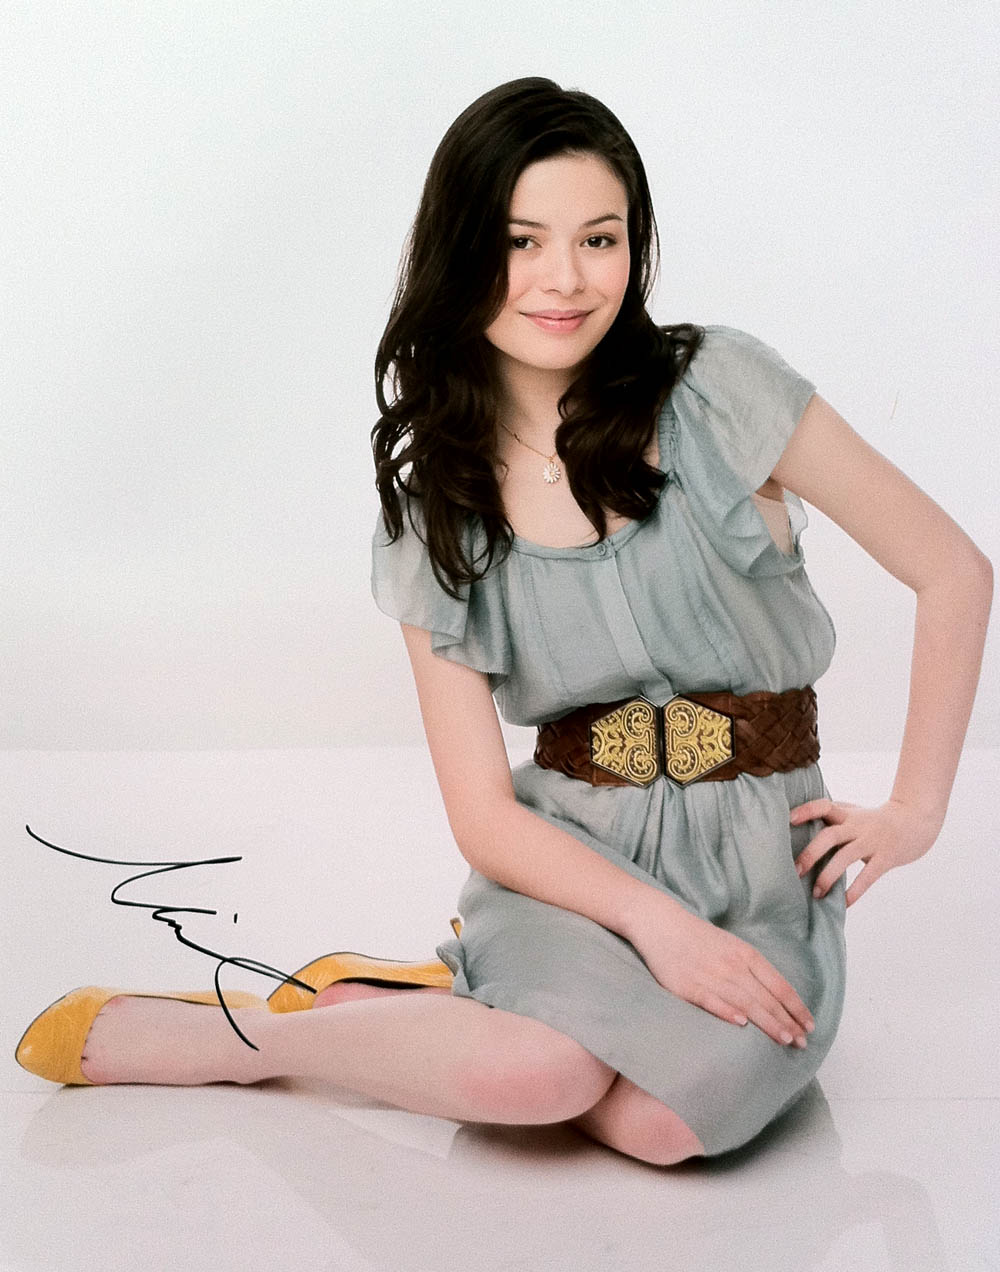 Miranda Cosgrove Autographed Signed Adorable 11x14 Photo PSA